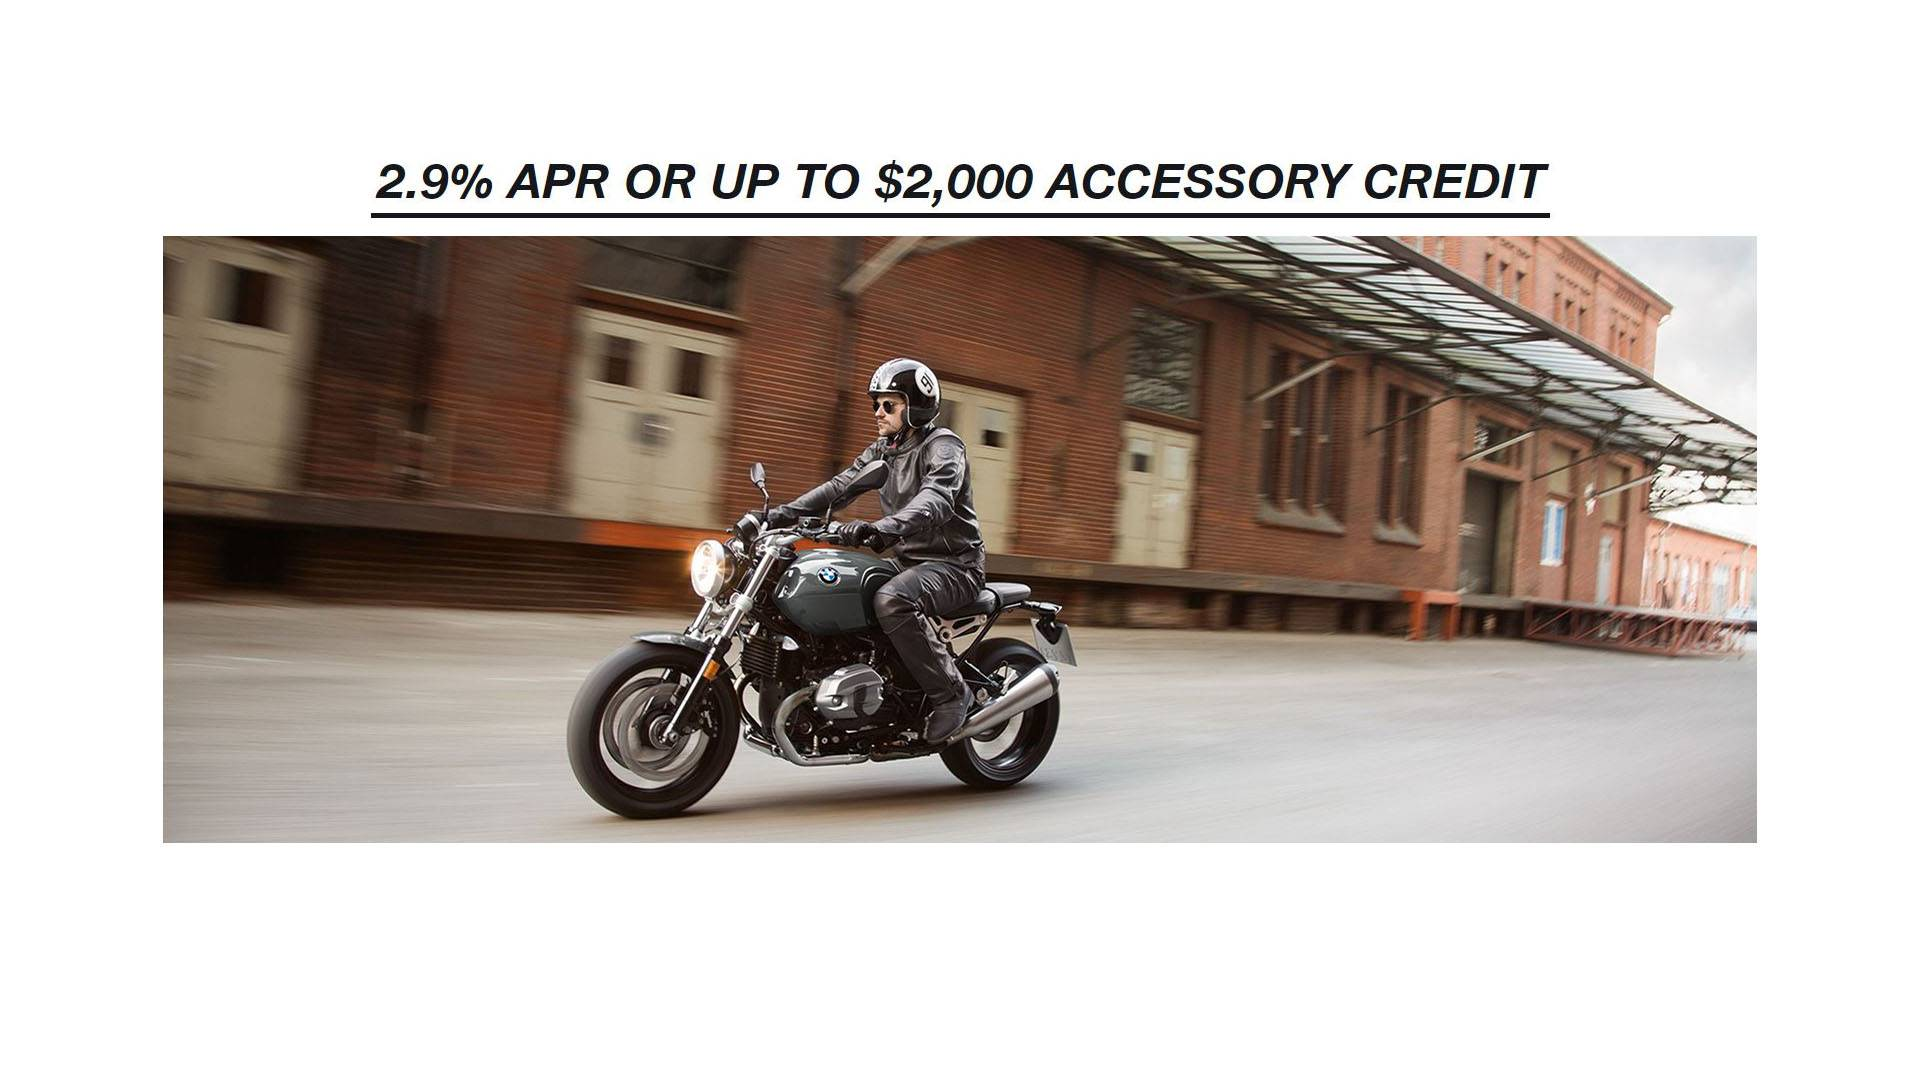 BMW - 2.9% APR OR UP TO $2,000 ACCESSORY CREDIT